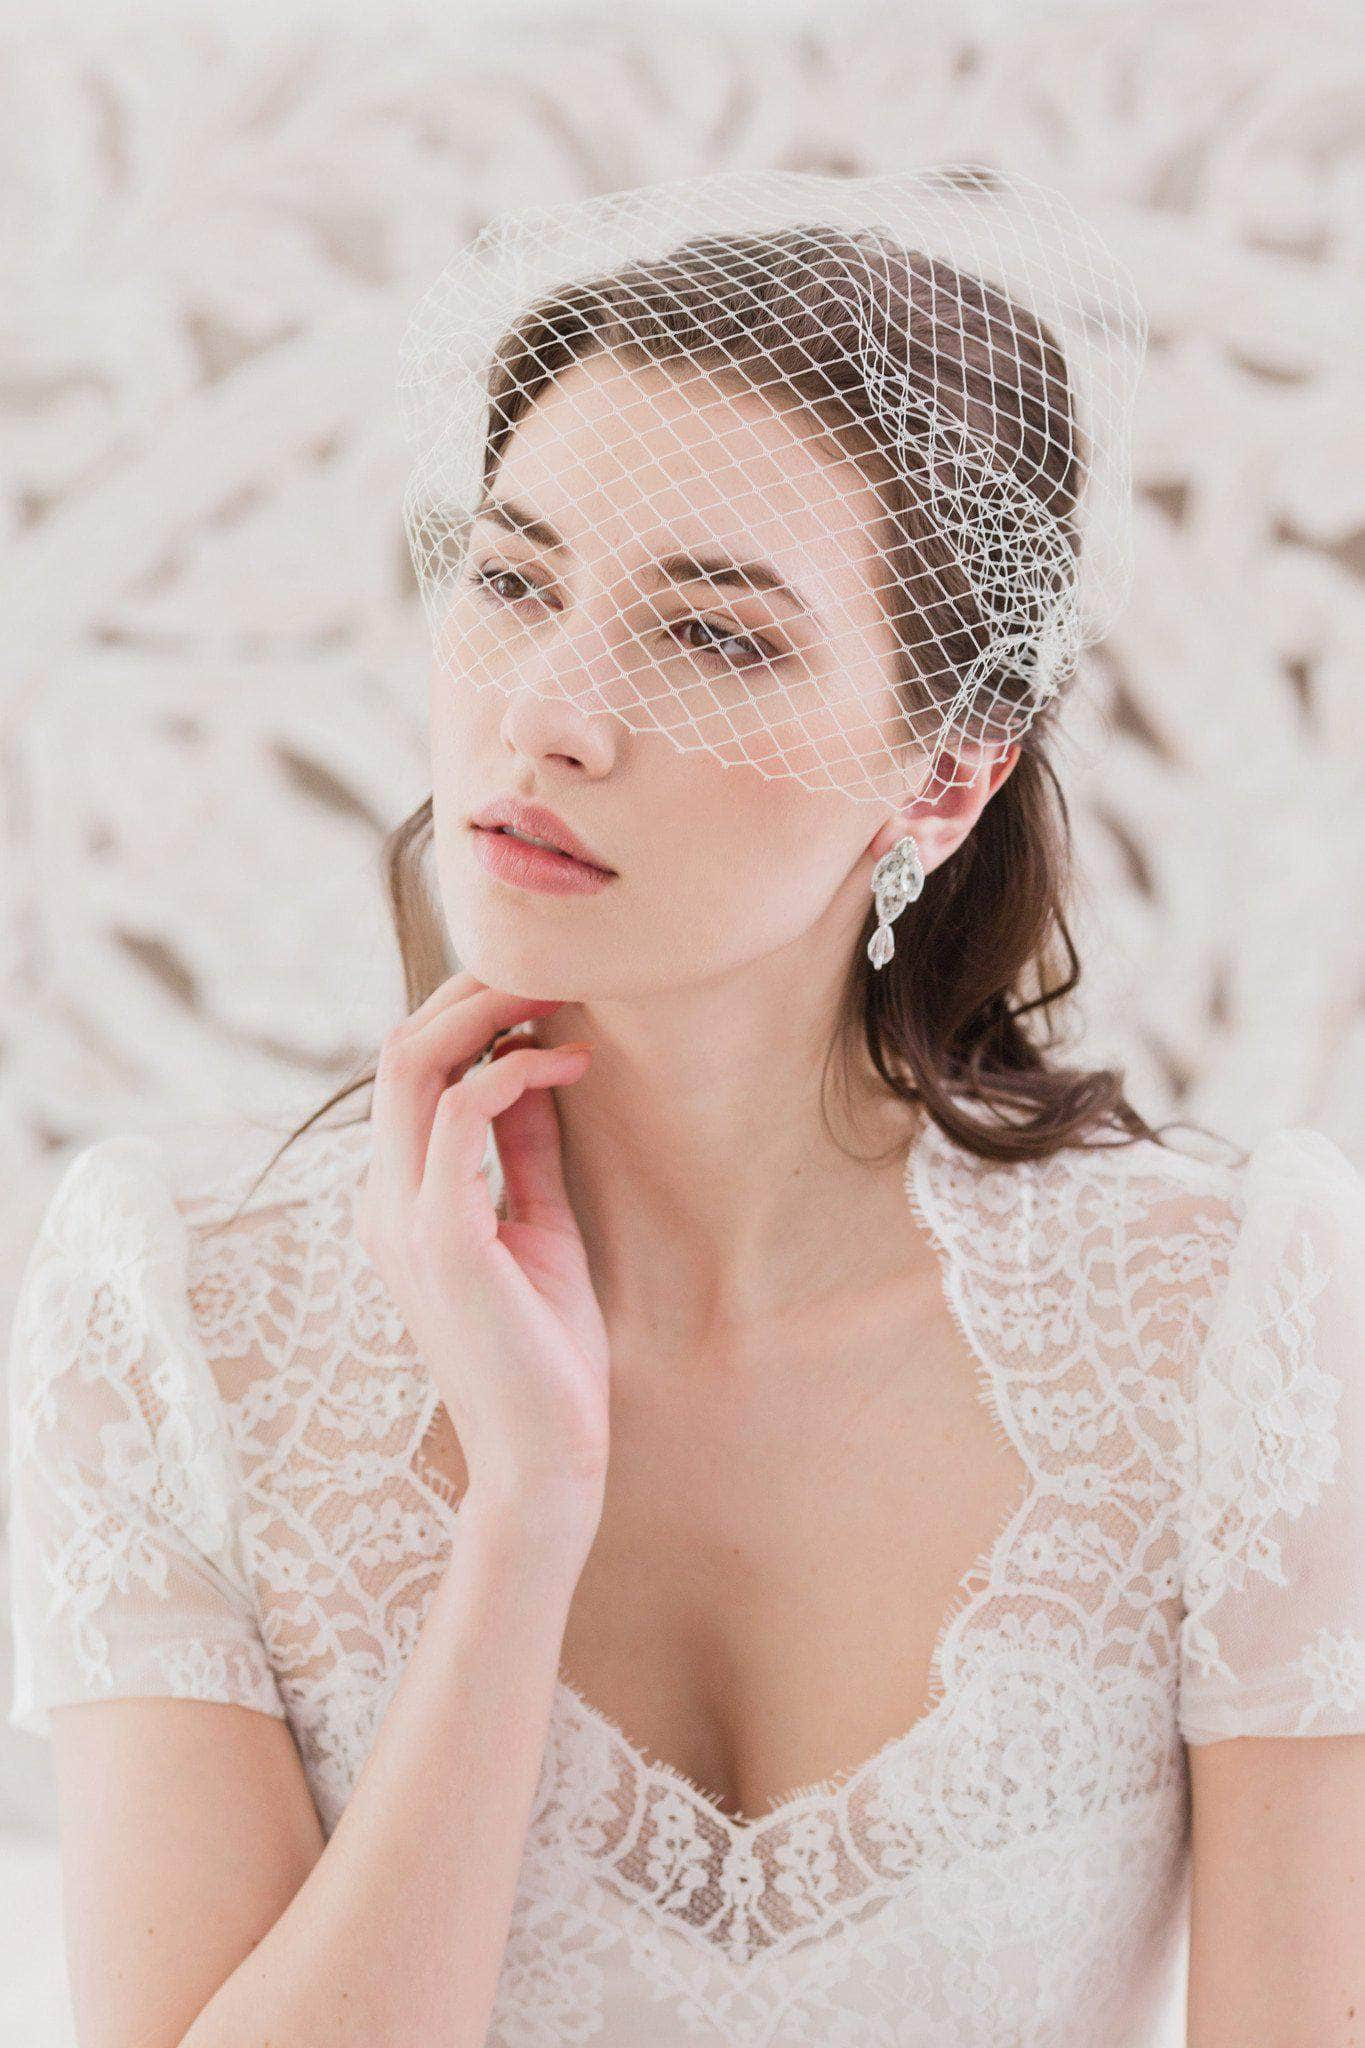 Bandeau wedding veil of Russian net - 'Alexandra'